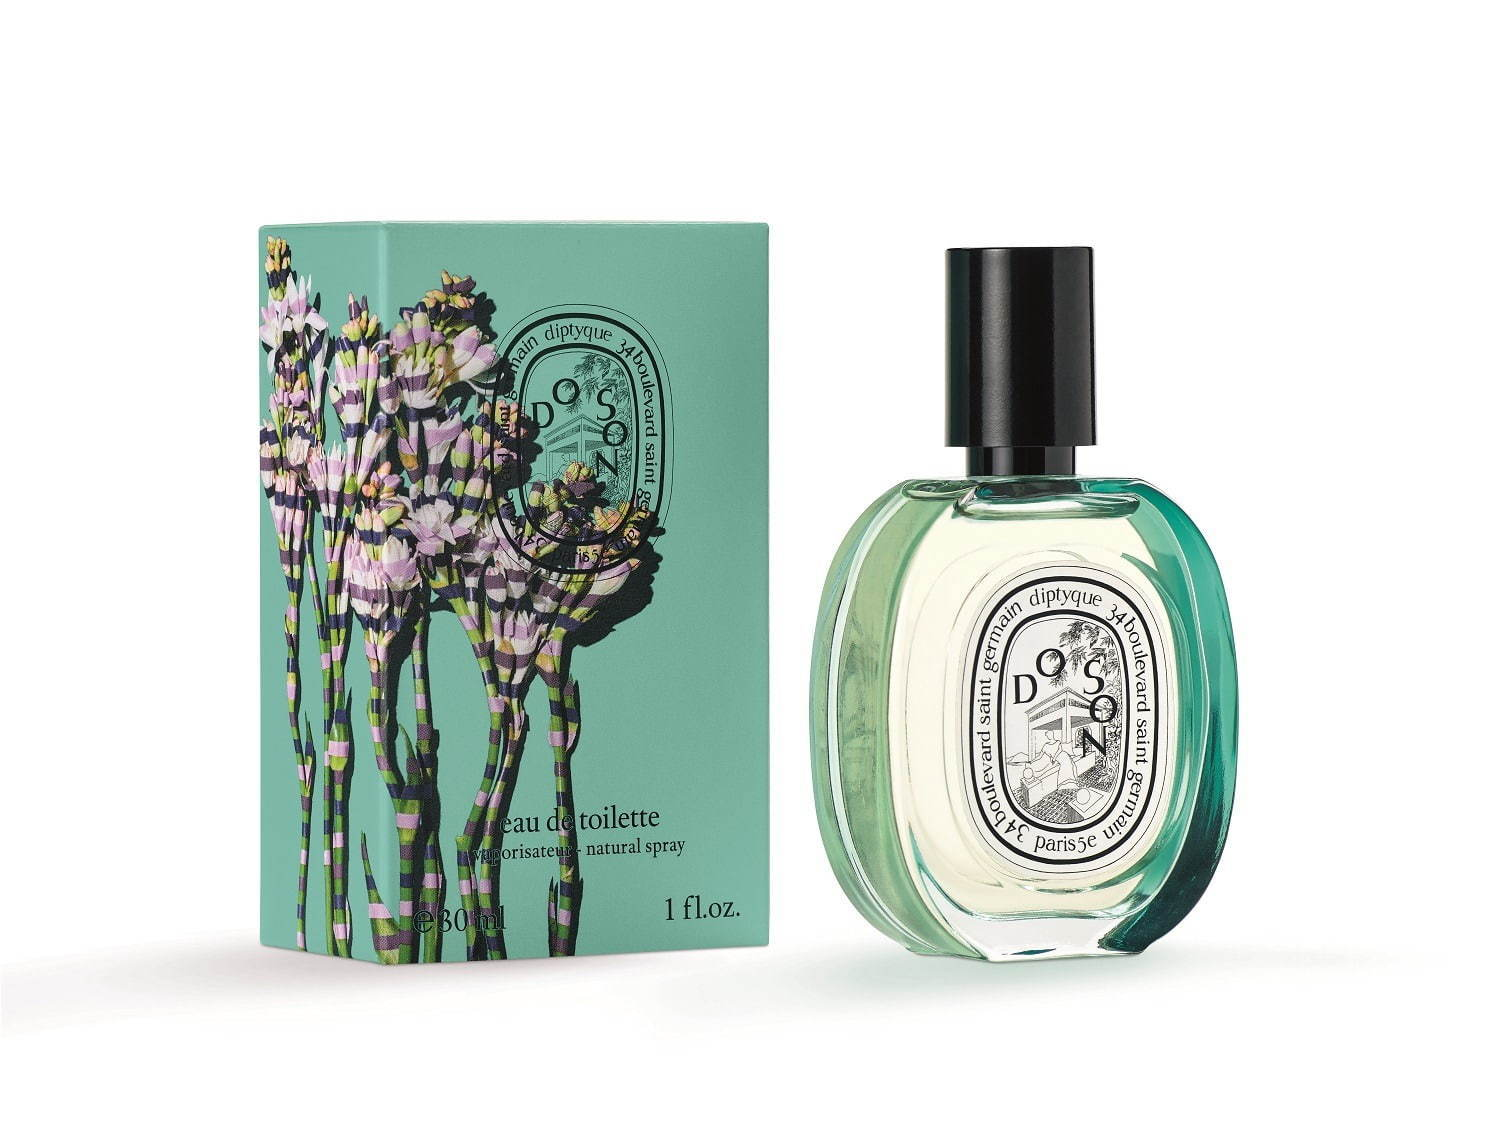 diptyque do son perfume review